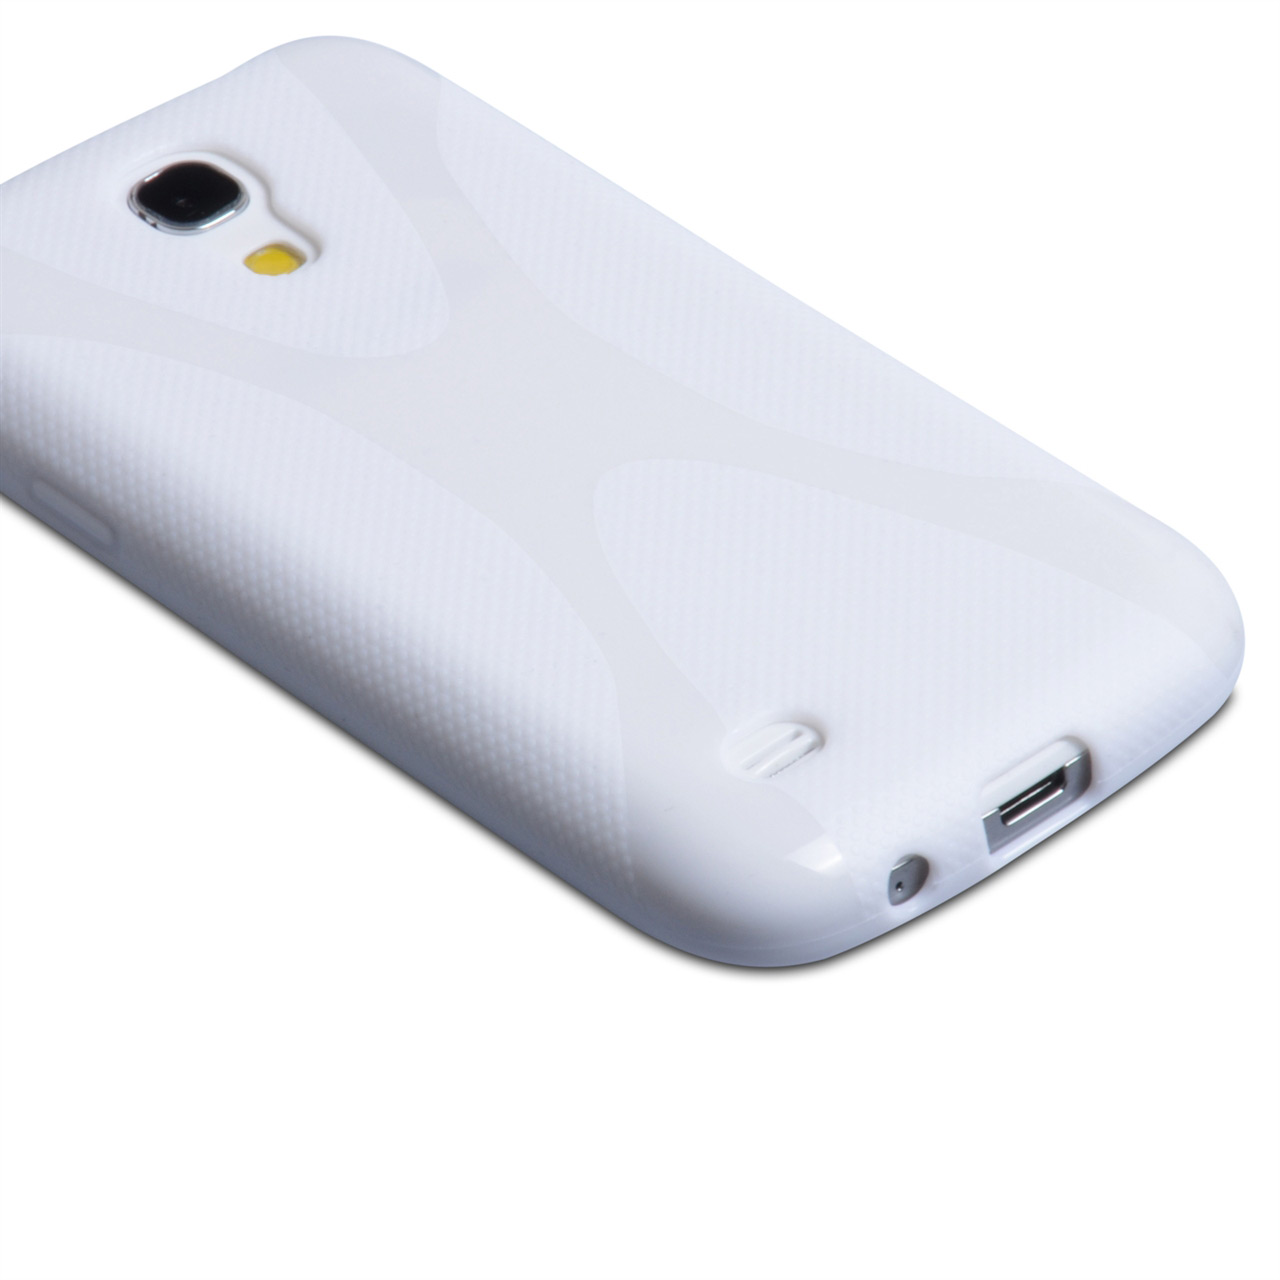 YouSave Accessories Samsung Galaxy S4 Mini White X-Line Gel Case